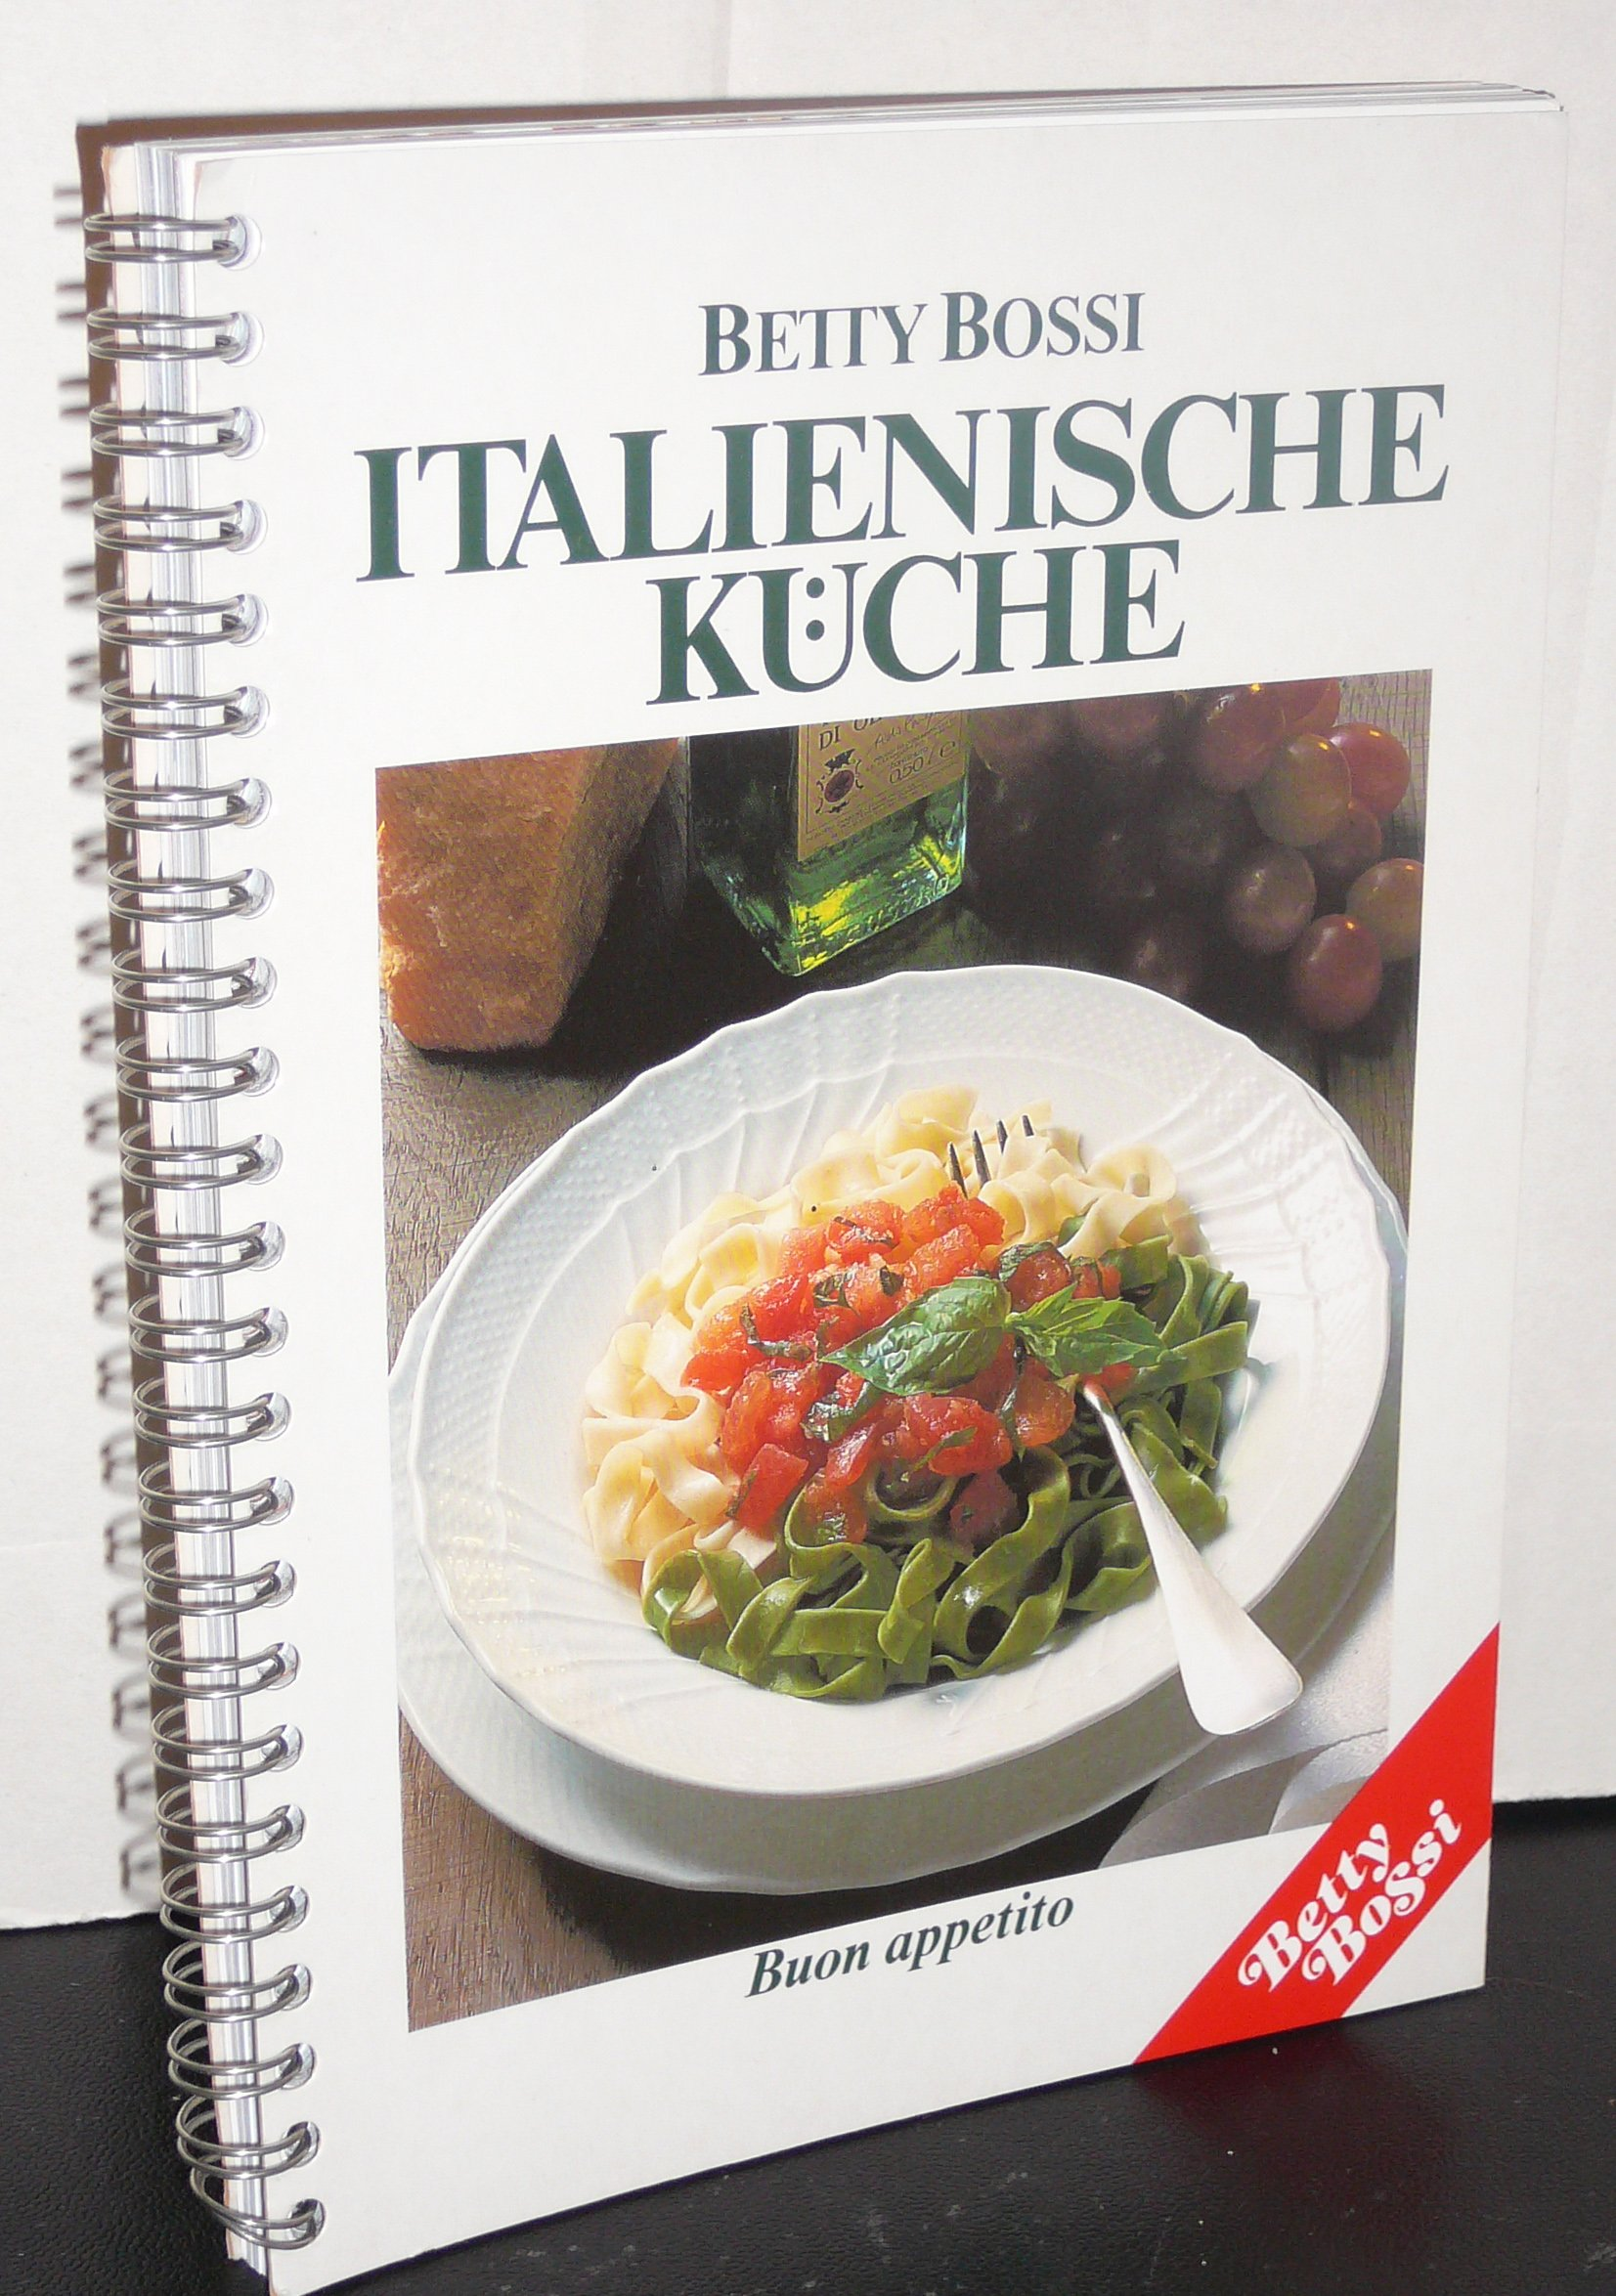 https://www.amazon.de/Italienische-K%C3%BCche-Betty-Bossi/dp/B002L3VZZS/ref=sr_1_31?s=books&ie=UTF8&qid=1472798682&sr=1-31&keywords=Betty+Bossi